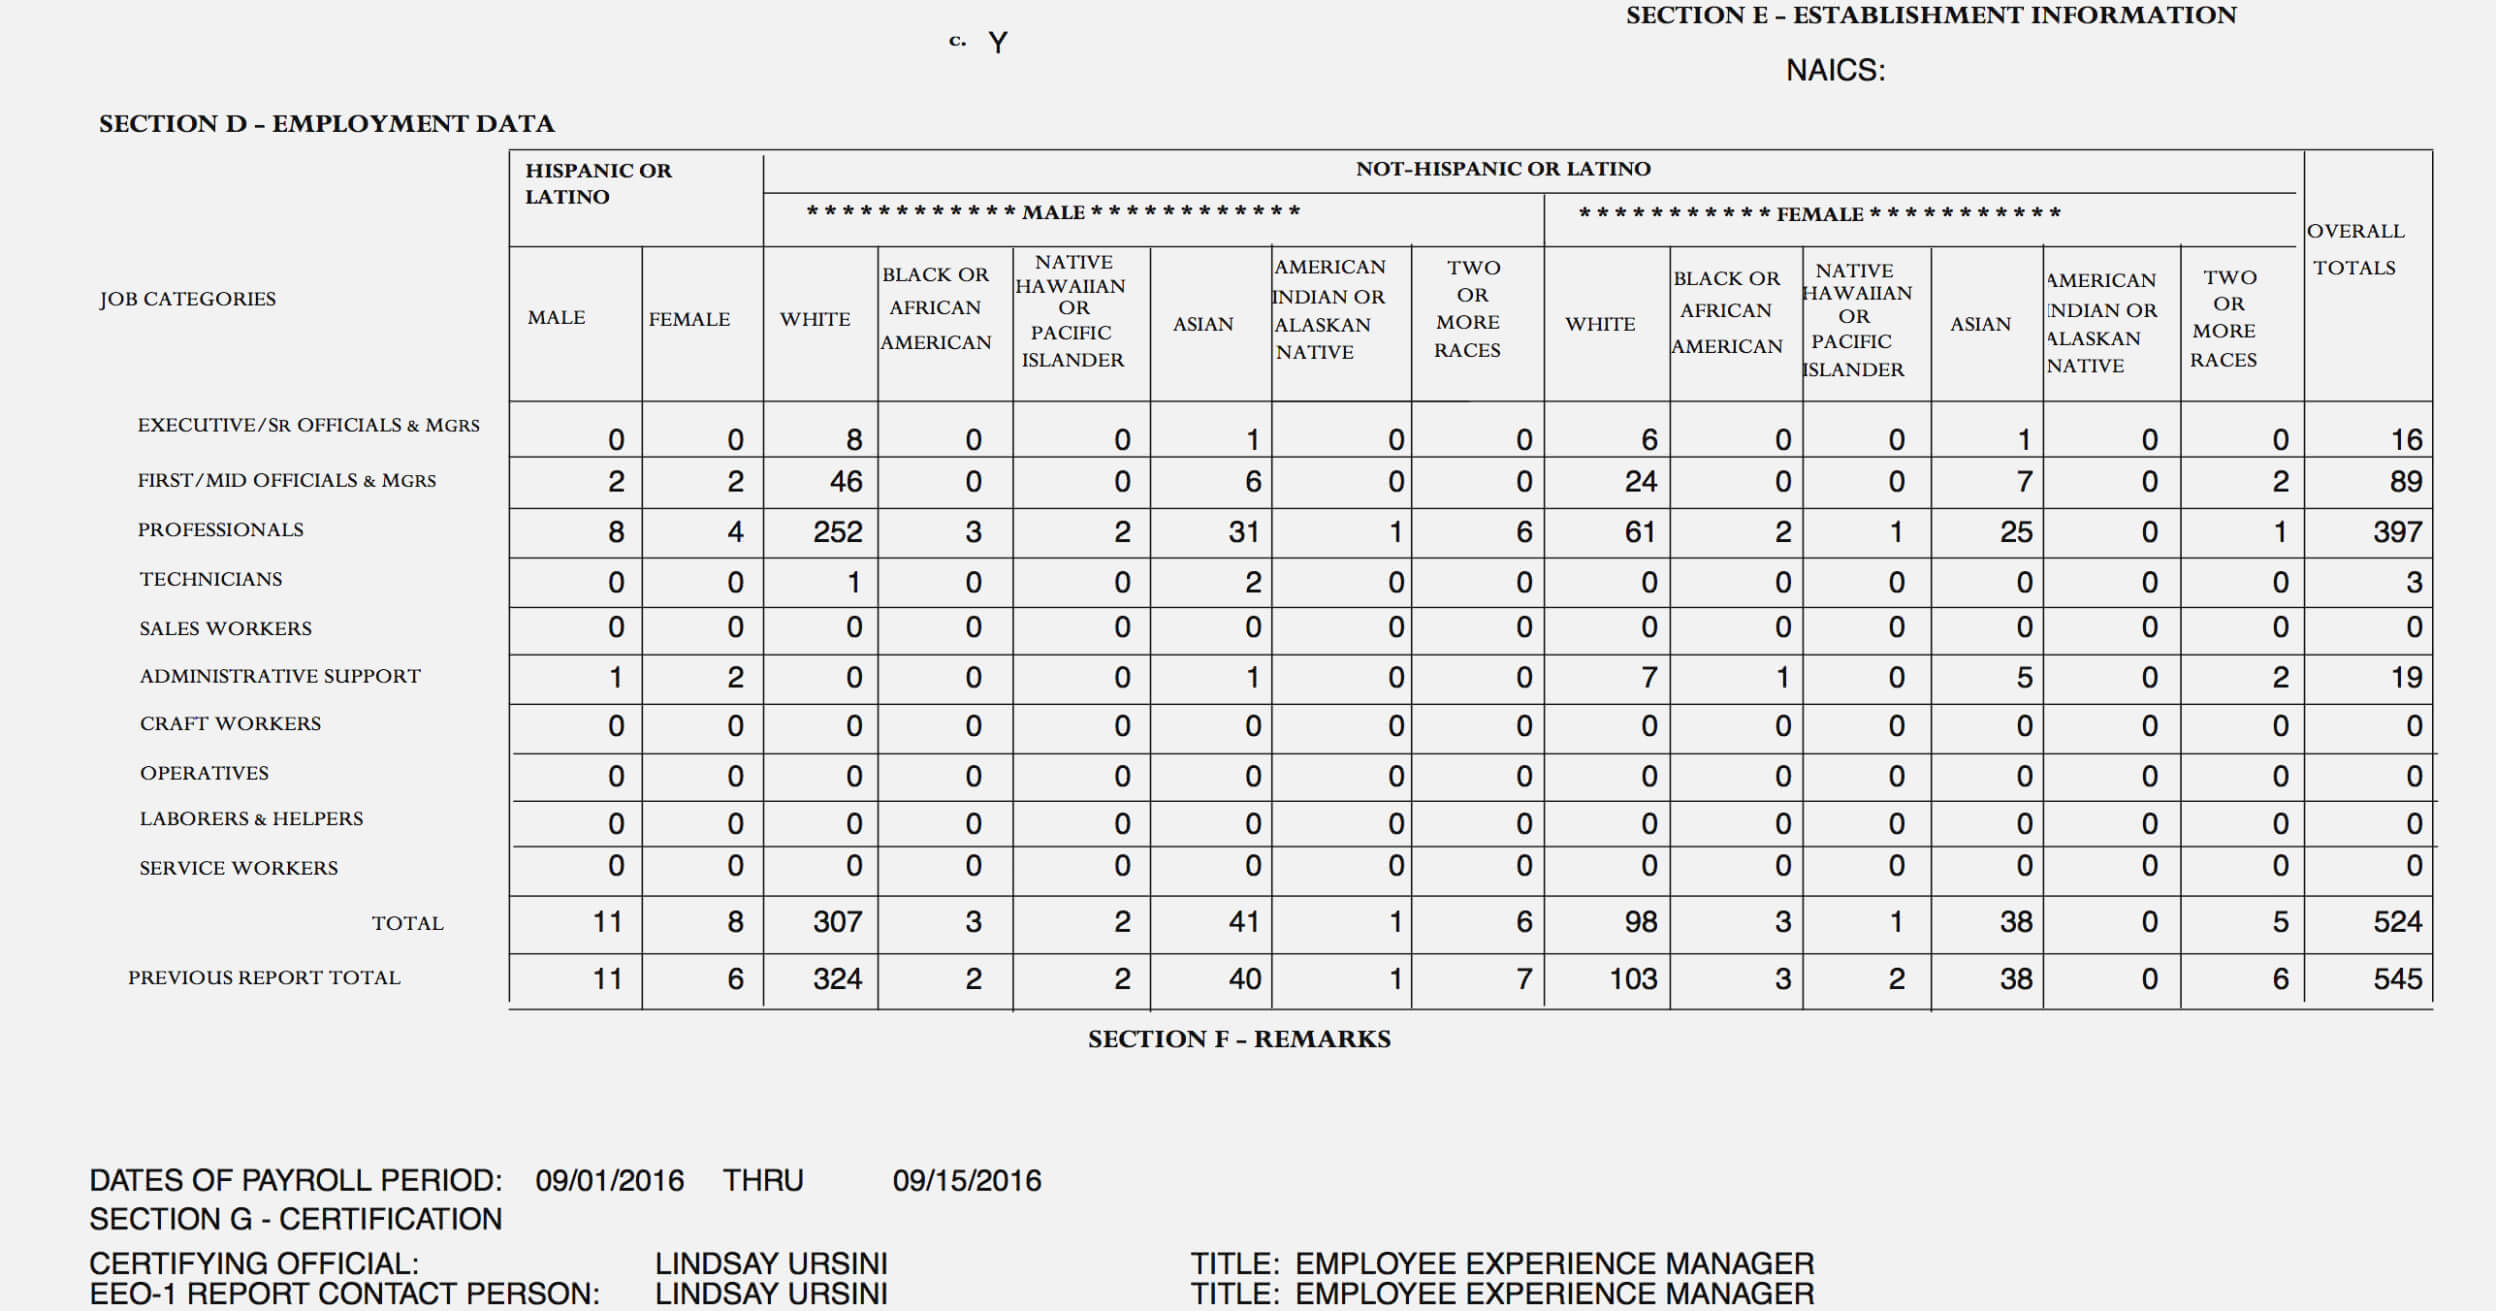 Eeo 1 Form Tax Refunds Eeo-1 Sample Self Identification 2019 intended for Eeo 1 Report Template